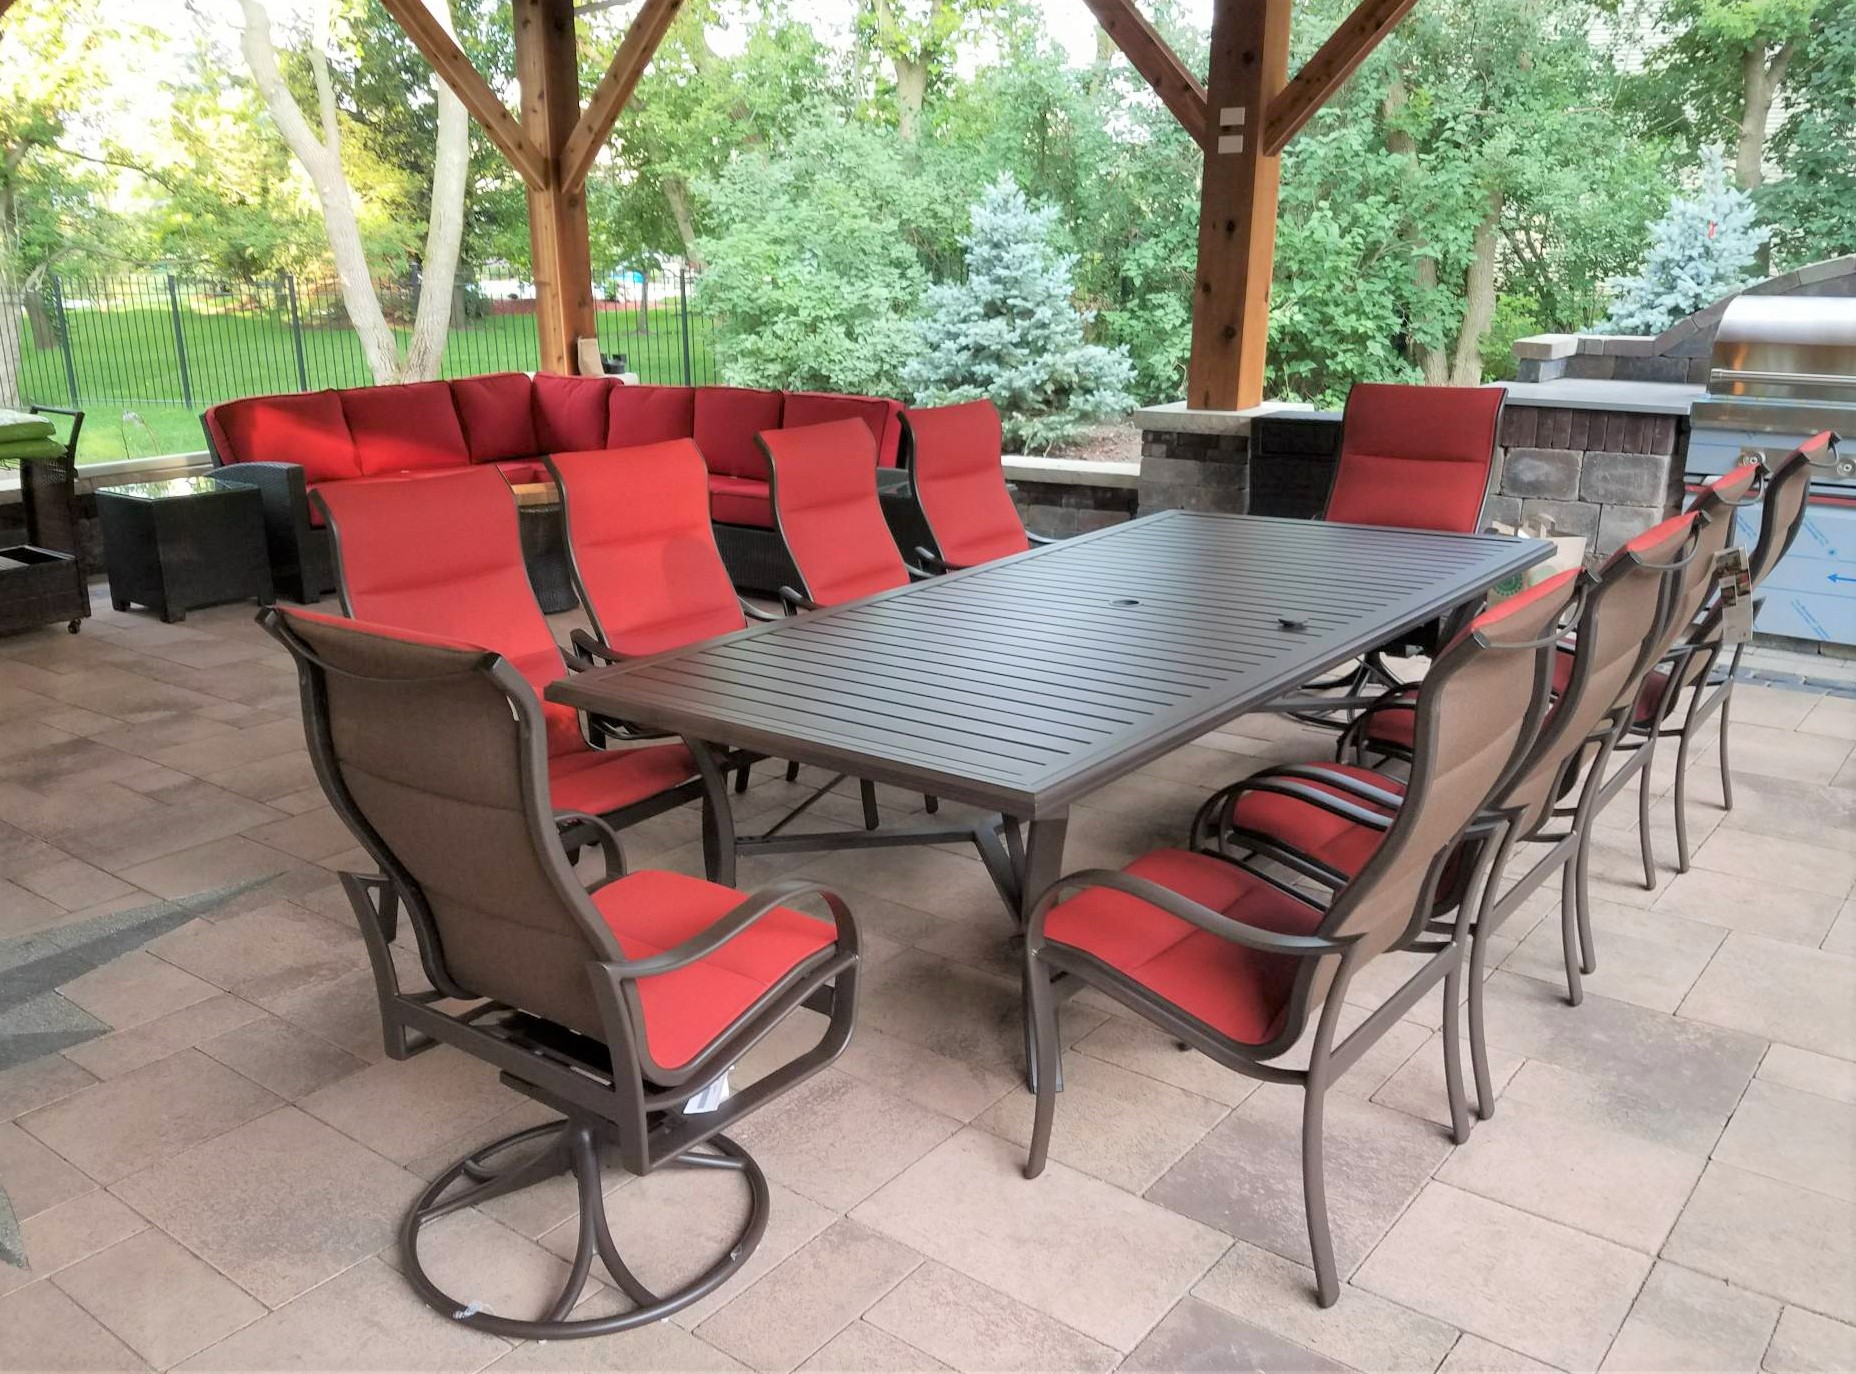 delivery installation of tropitone chicago wicker patio furniture in riverwoods il - Tropitone Patio Furniture